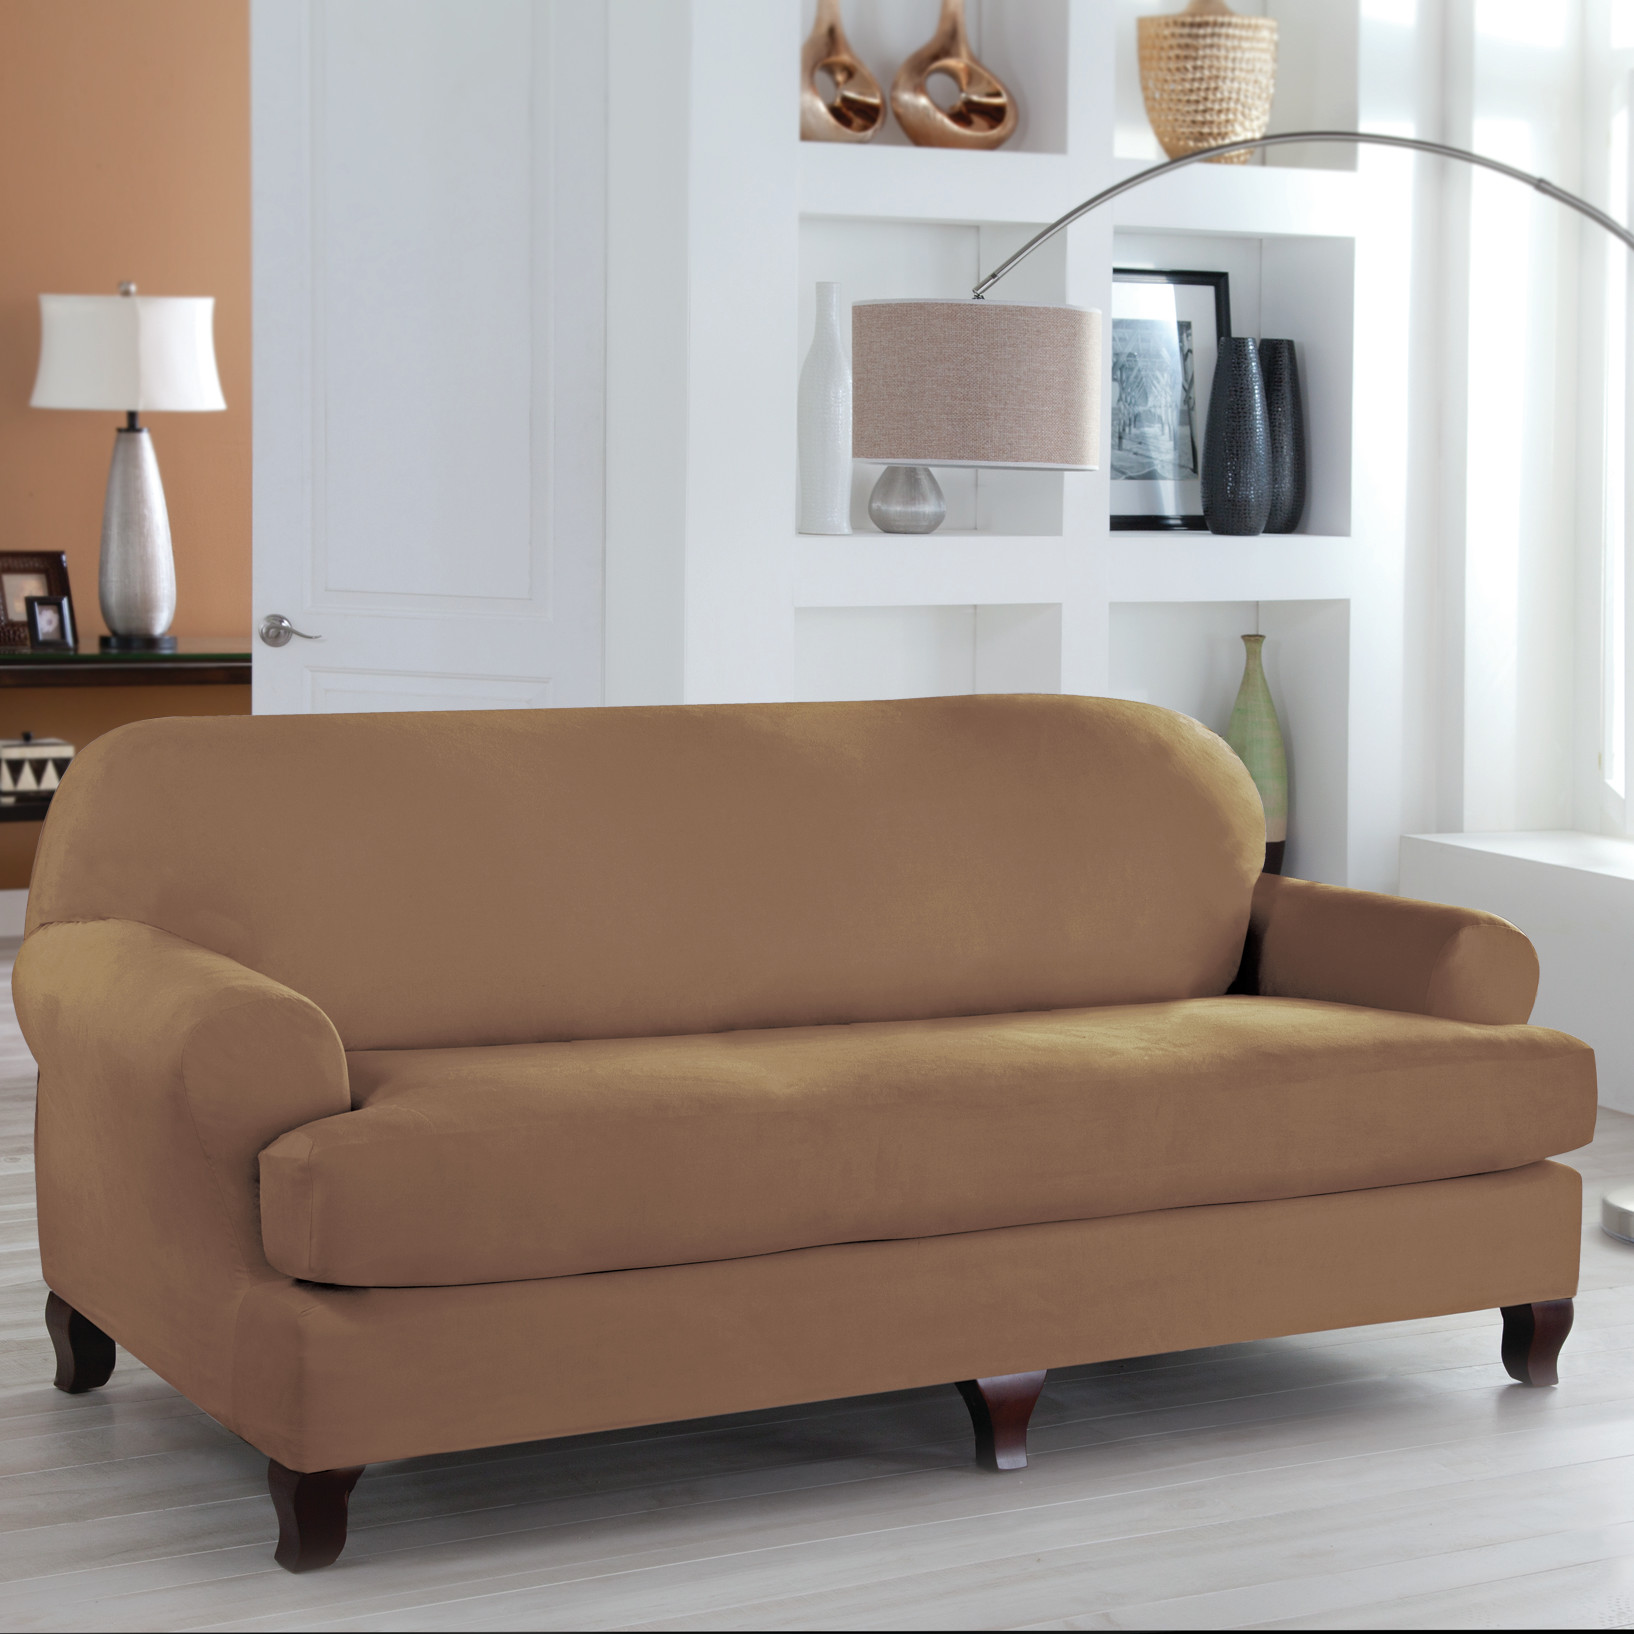 Rowe Furniture Slipcovers | Sectional Sofa Slipcovers | Crate and Barrel Couch Covers